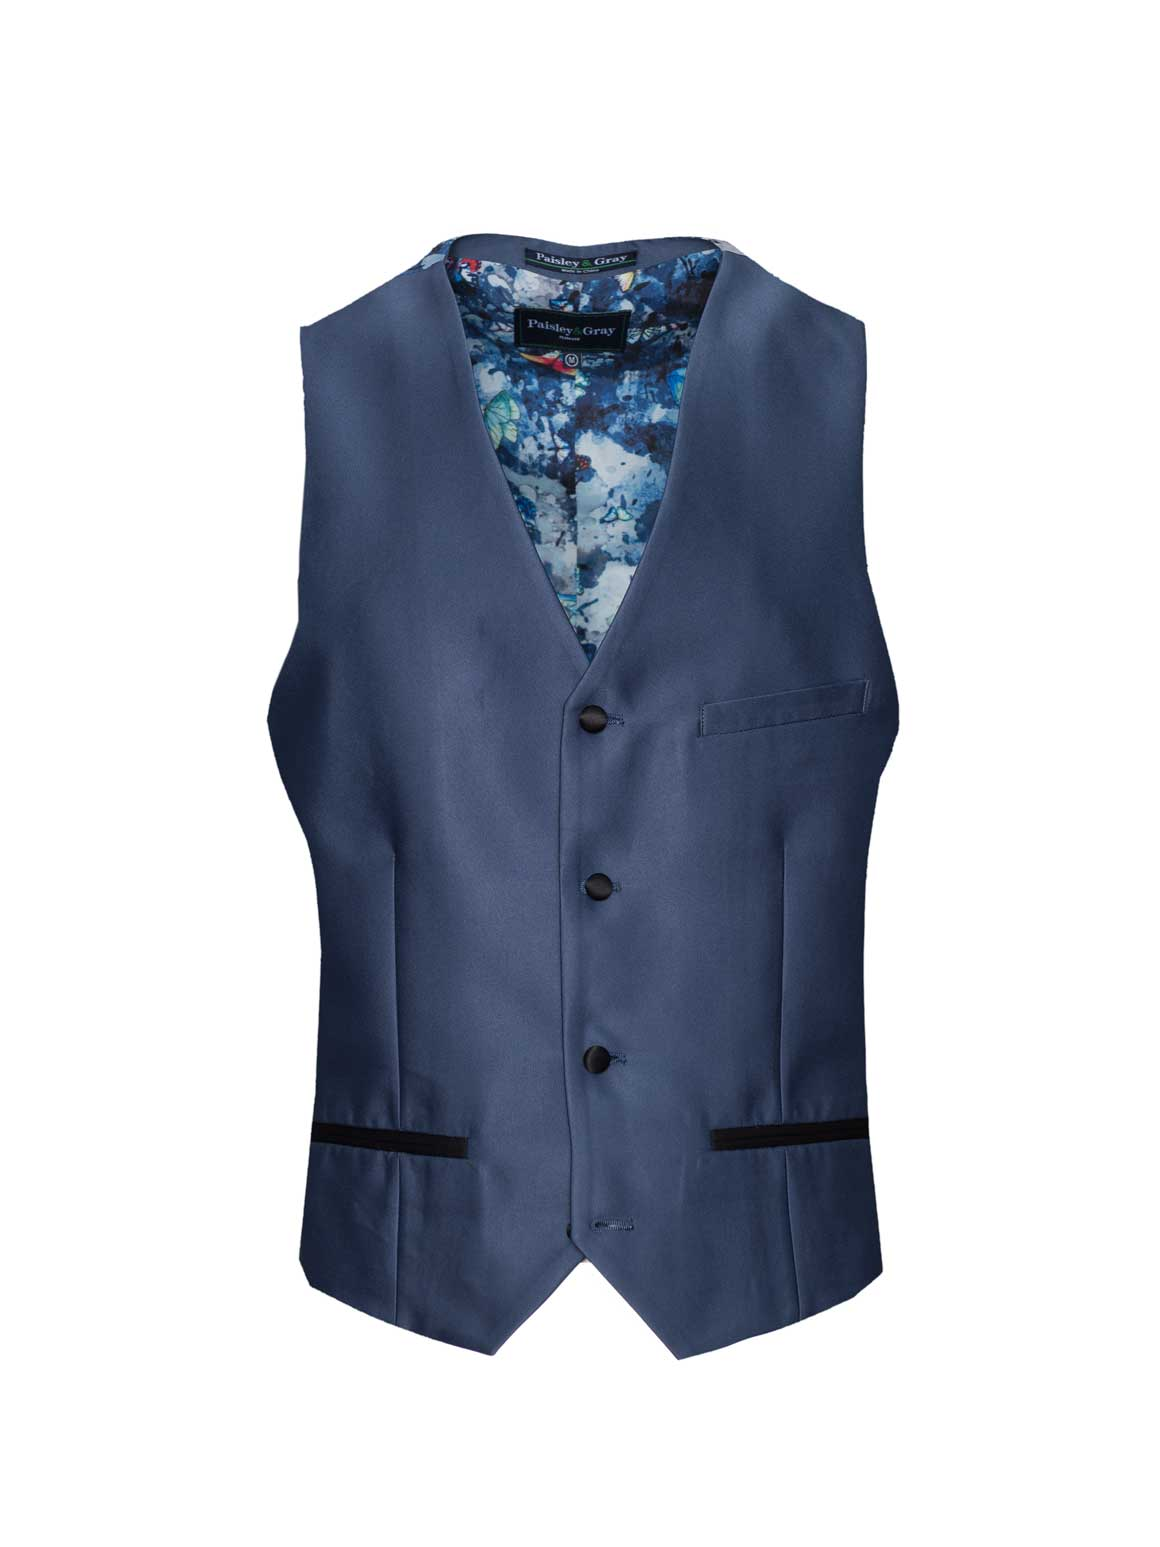 Chatsworth Tuxedo Vest - Slim - Blue Silky